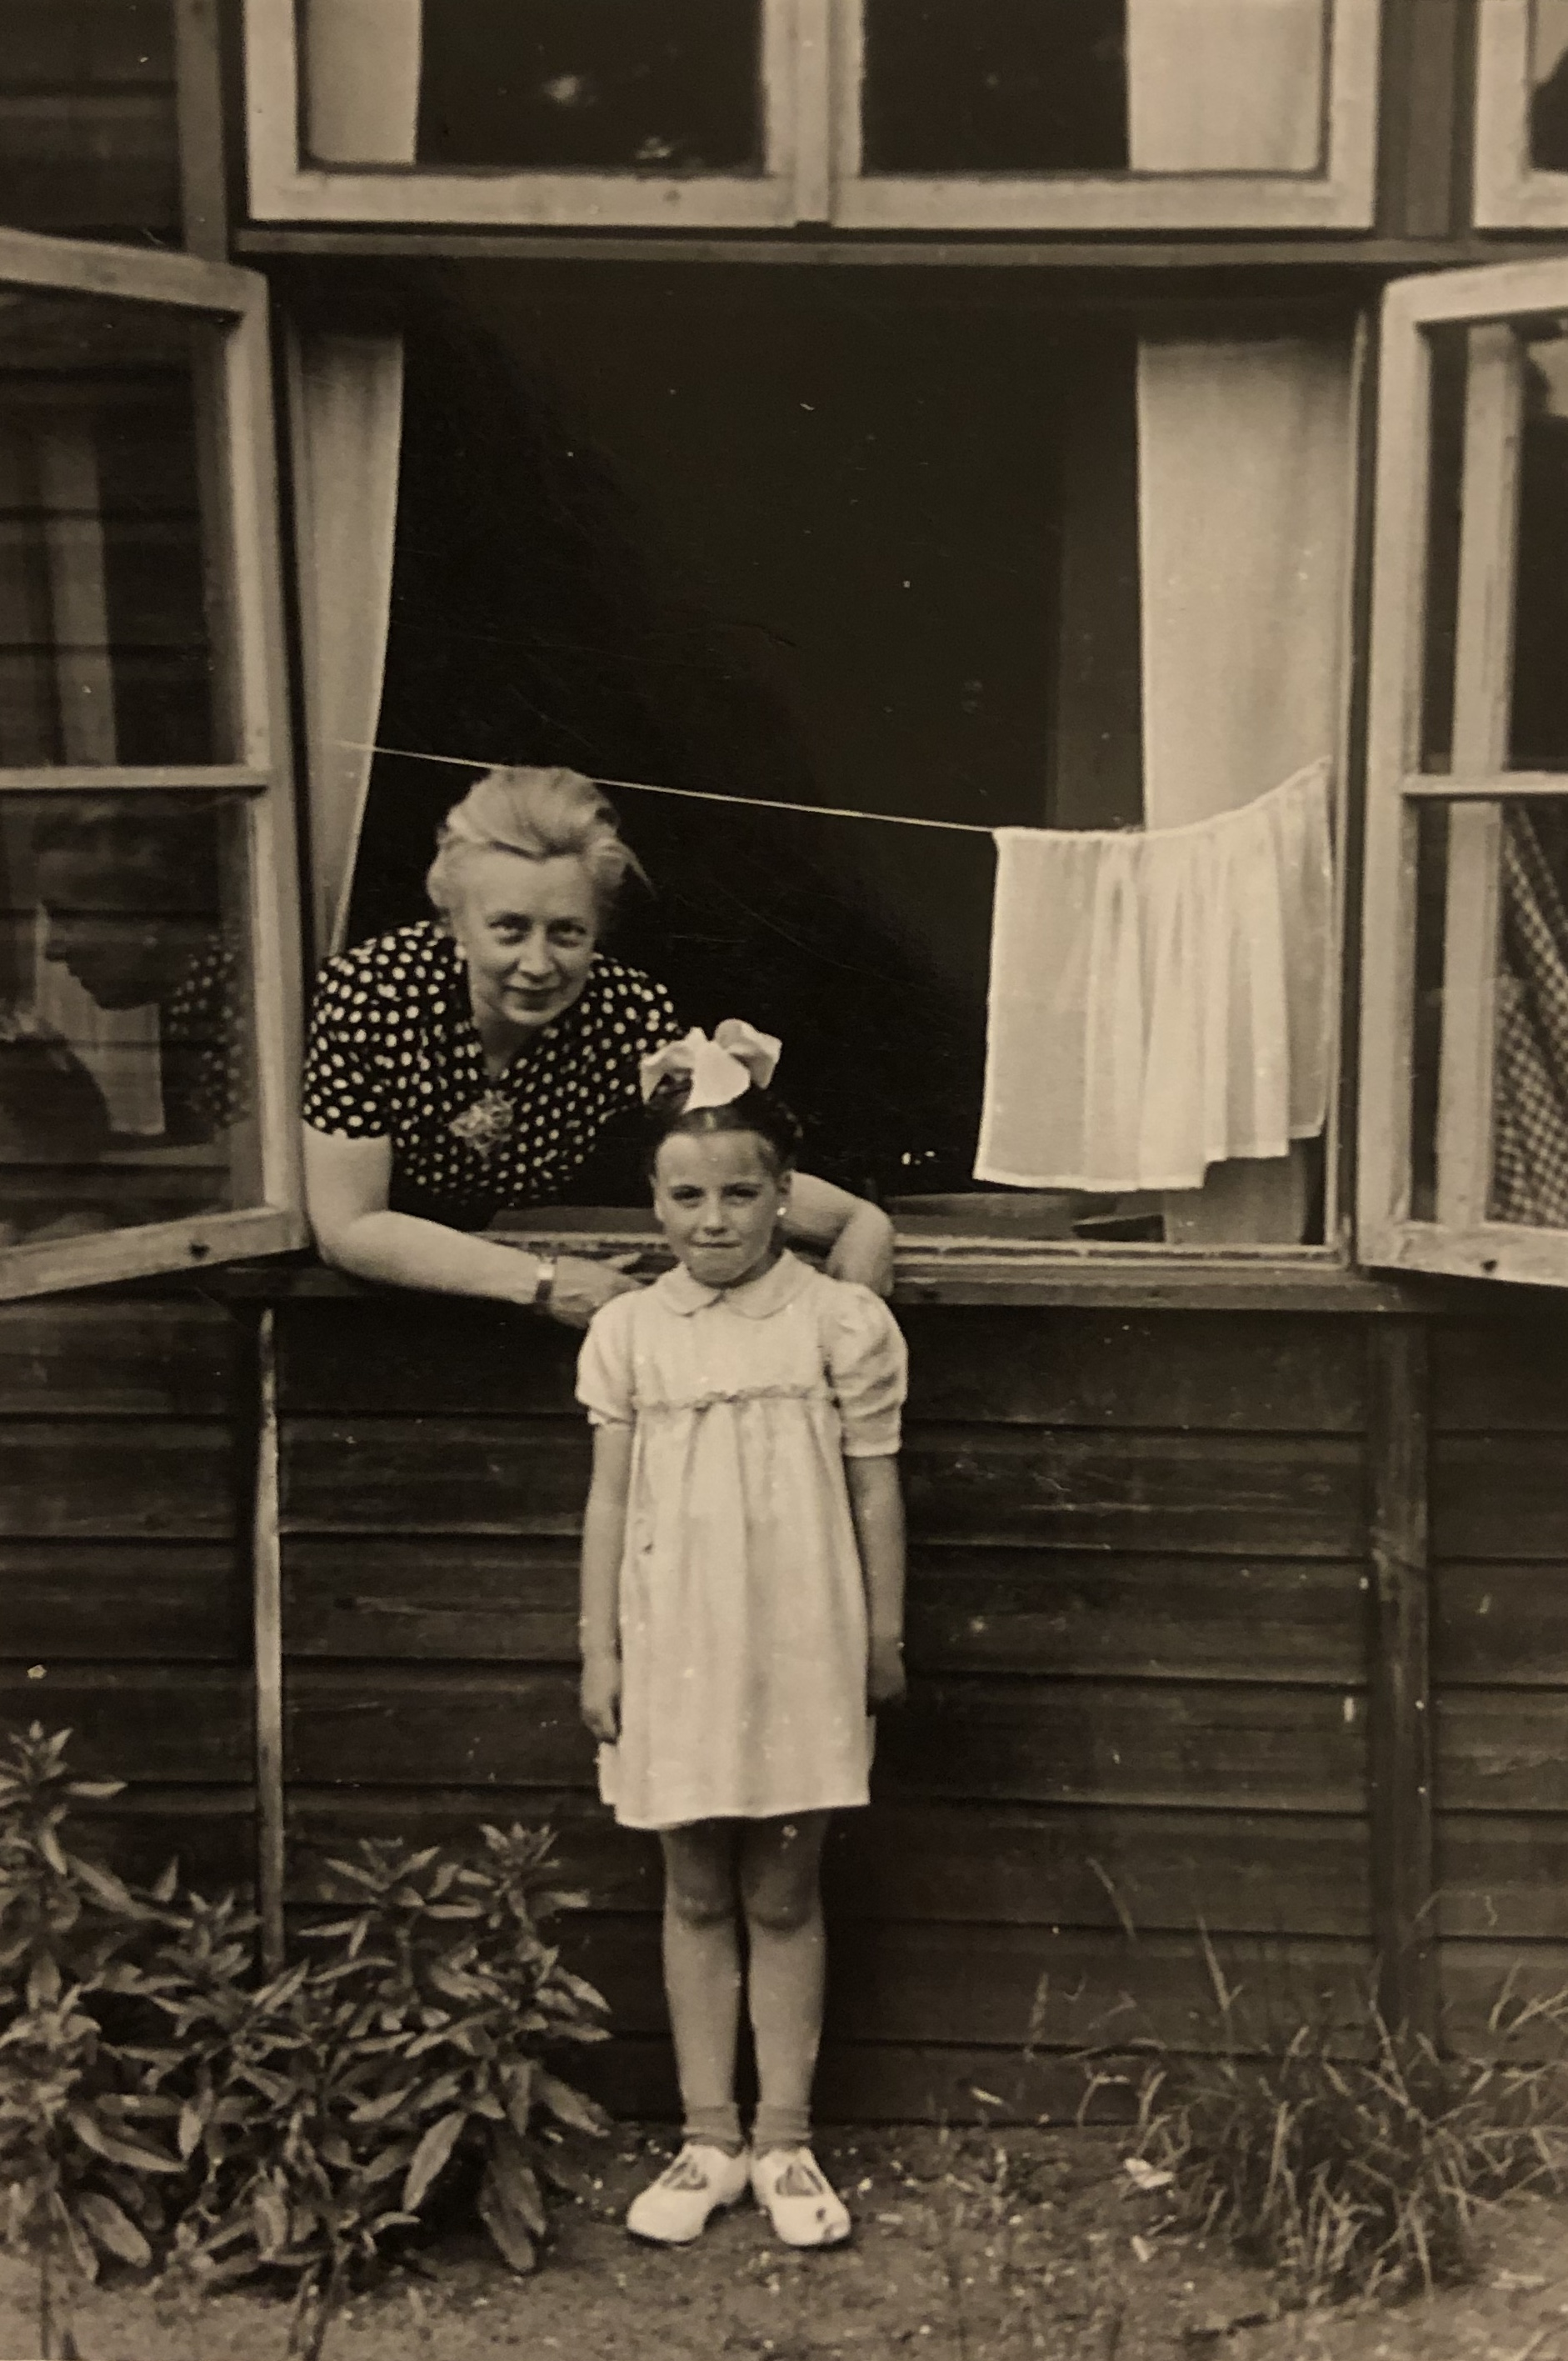 An old black and white photo of an older lady with her hands on the shoulders of a young girl.